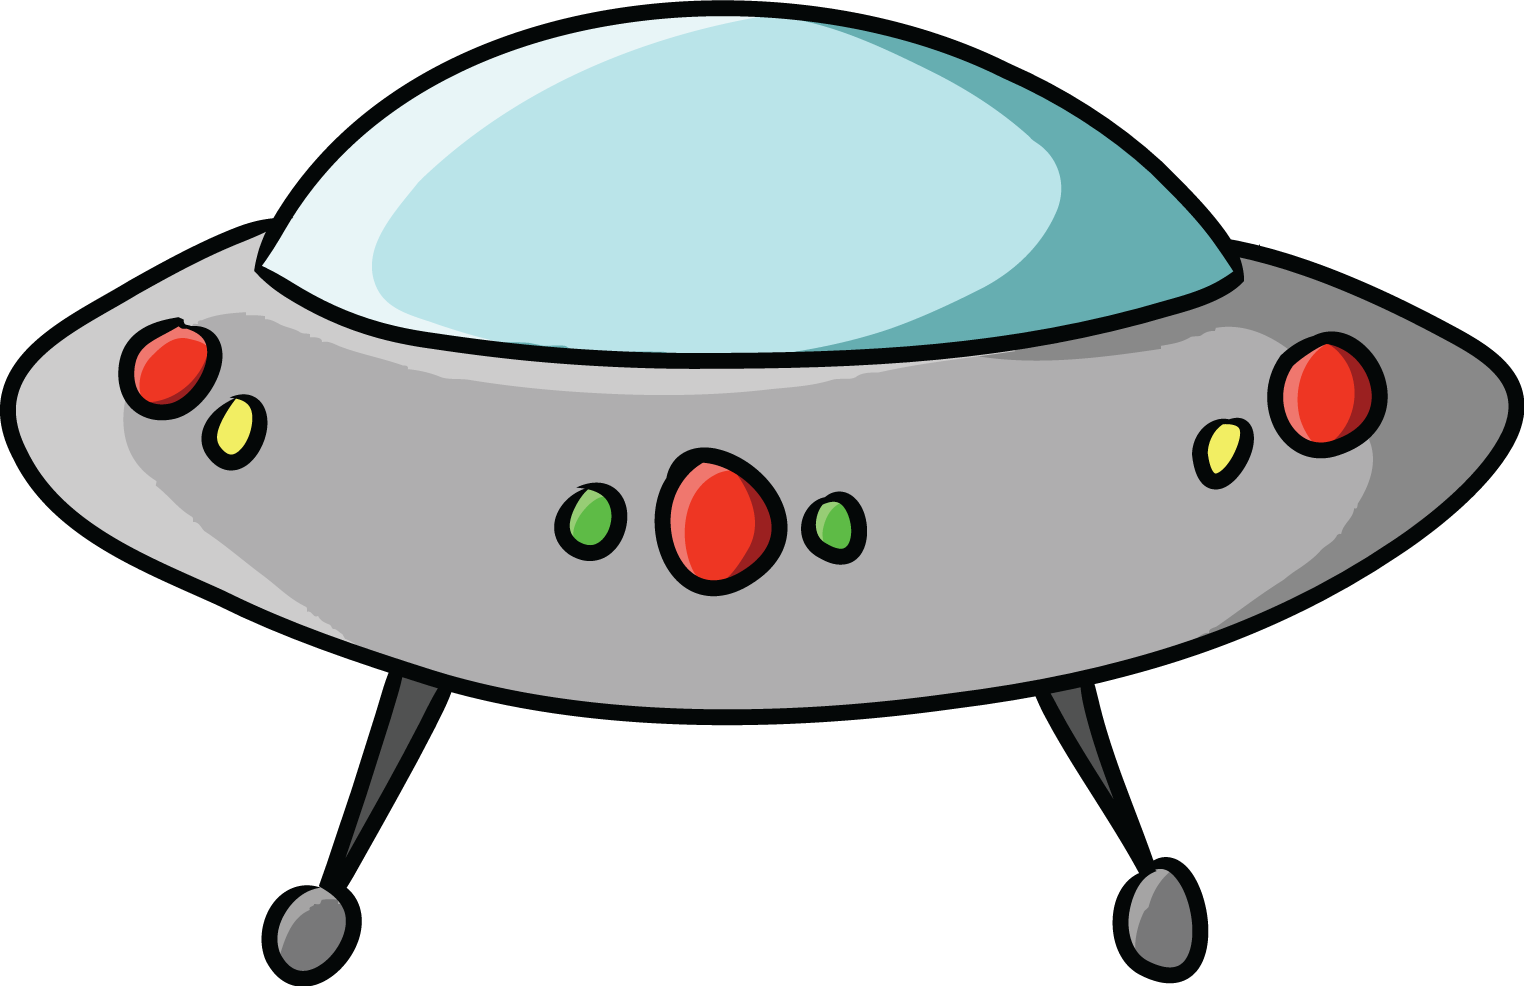 jpg freeuse download Ufos signs in nepal. Galaxy clipart spaceship